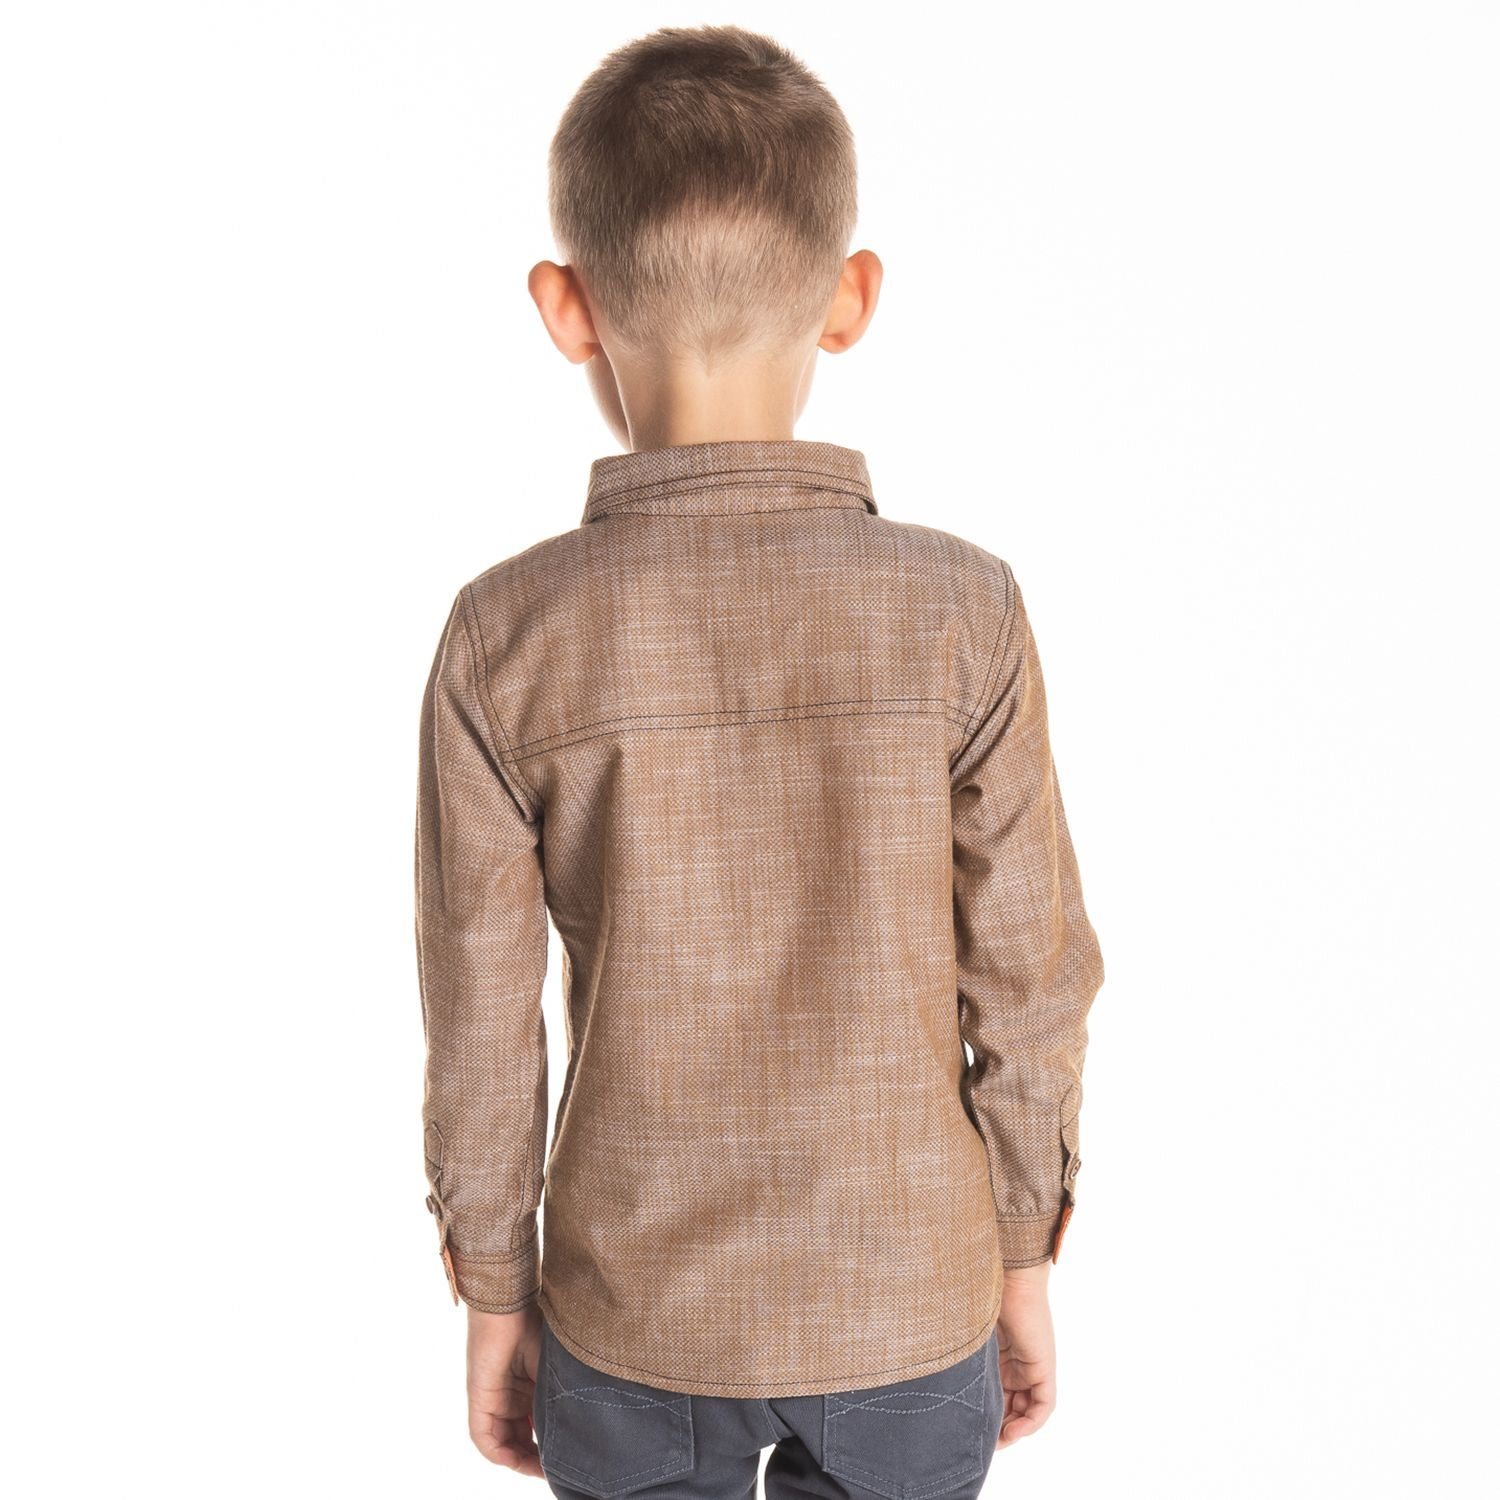 Disk Shirt for Boys